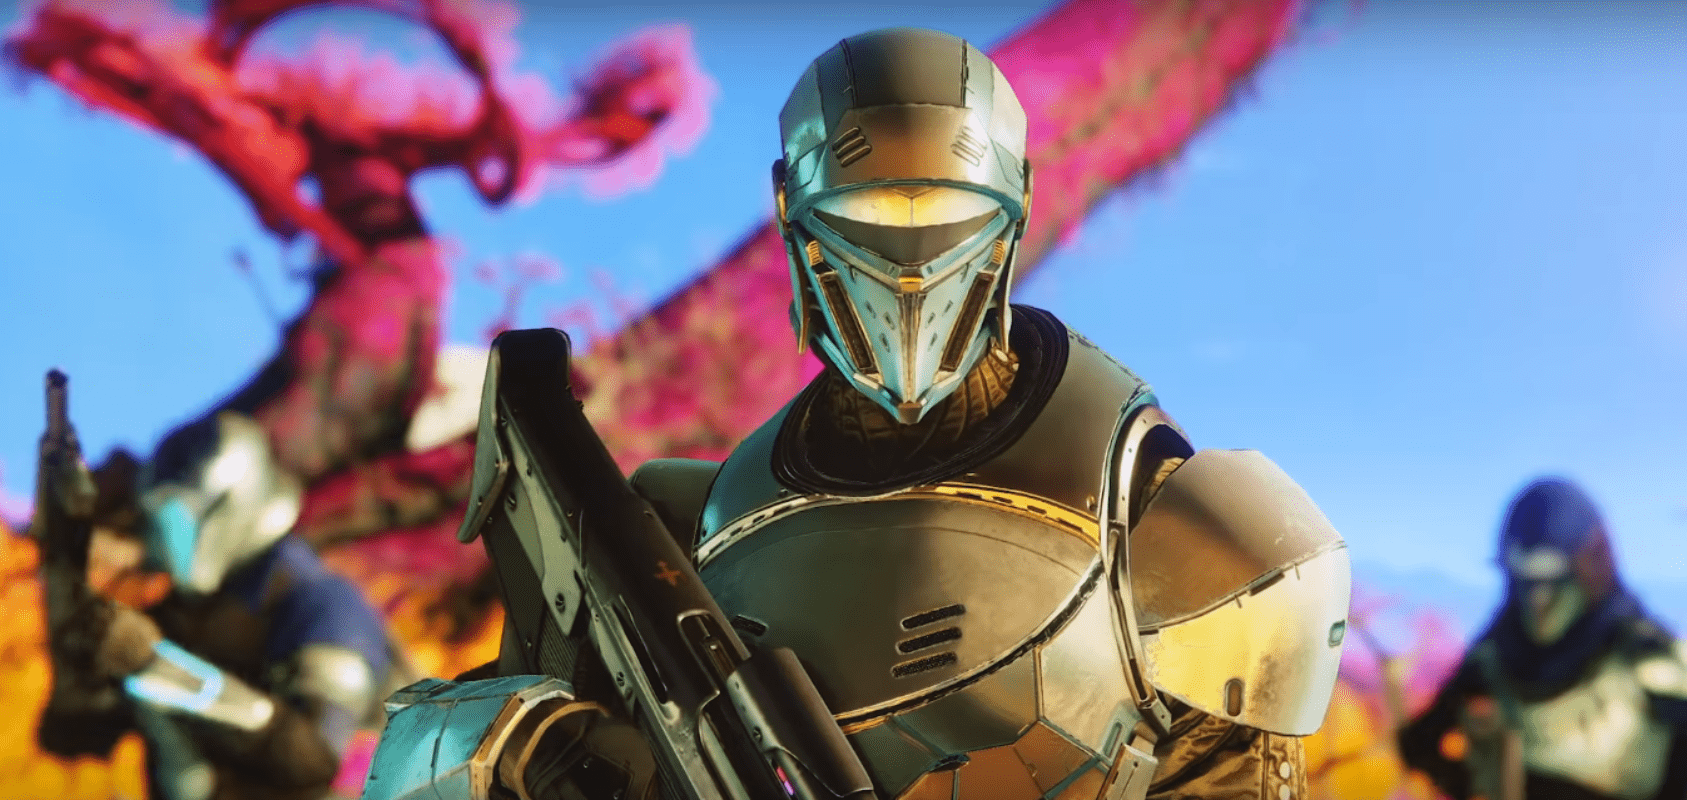 Destiny 2 And Grand Theft Auto V Are Part Of The 12 Most Played Steam Games Of 2019